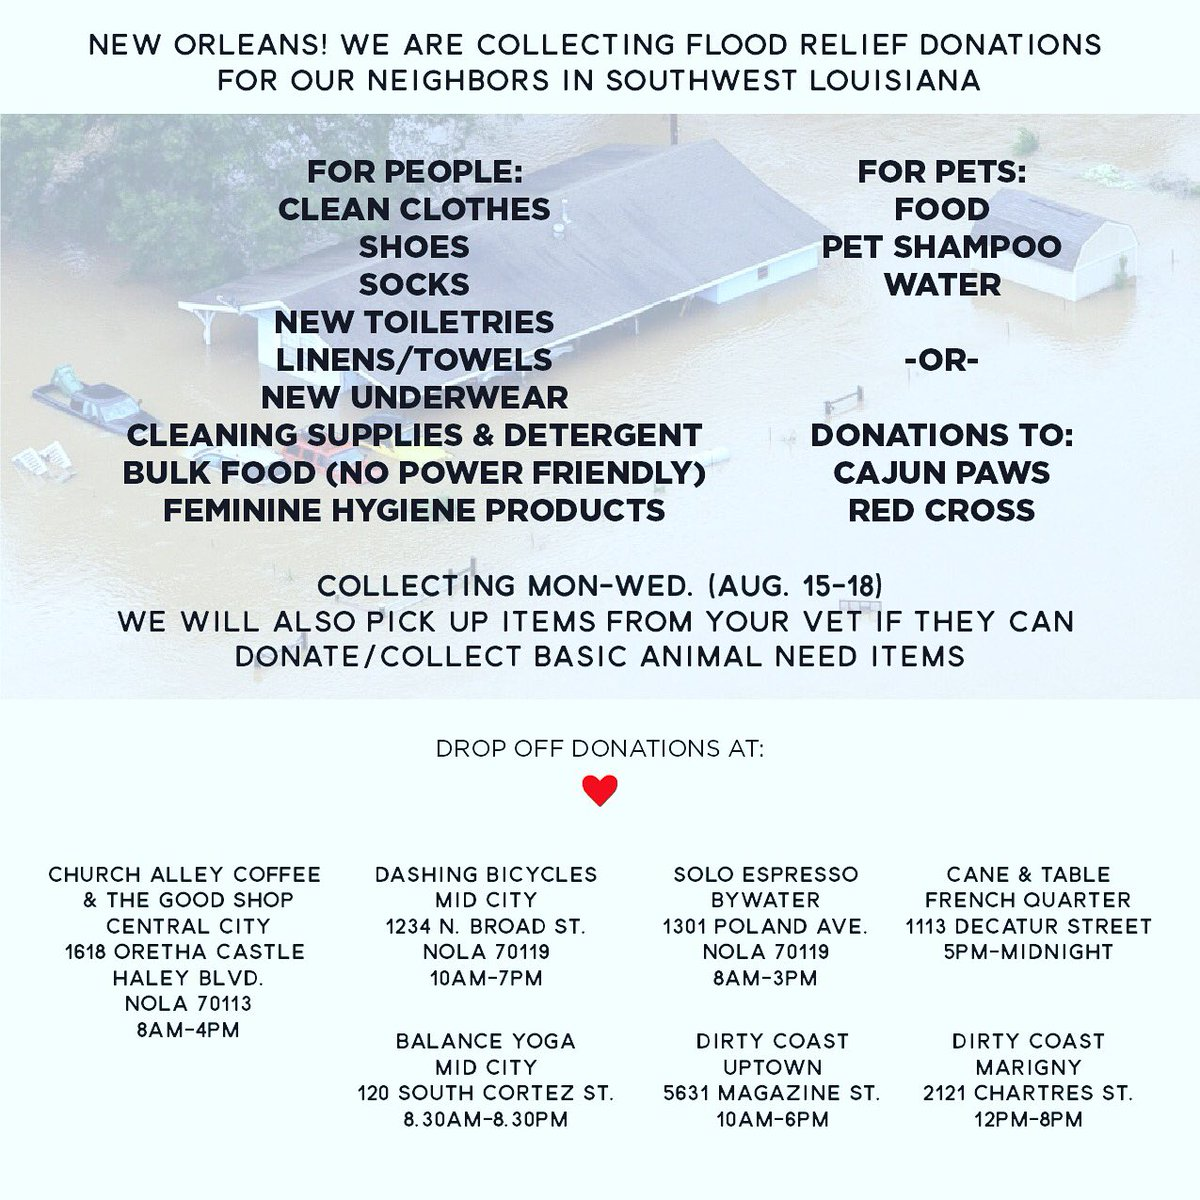 We are accepting donation for our neighbors impacted by the flooding down the road. Please #retweet https://t.co/K6N71mw1QX